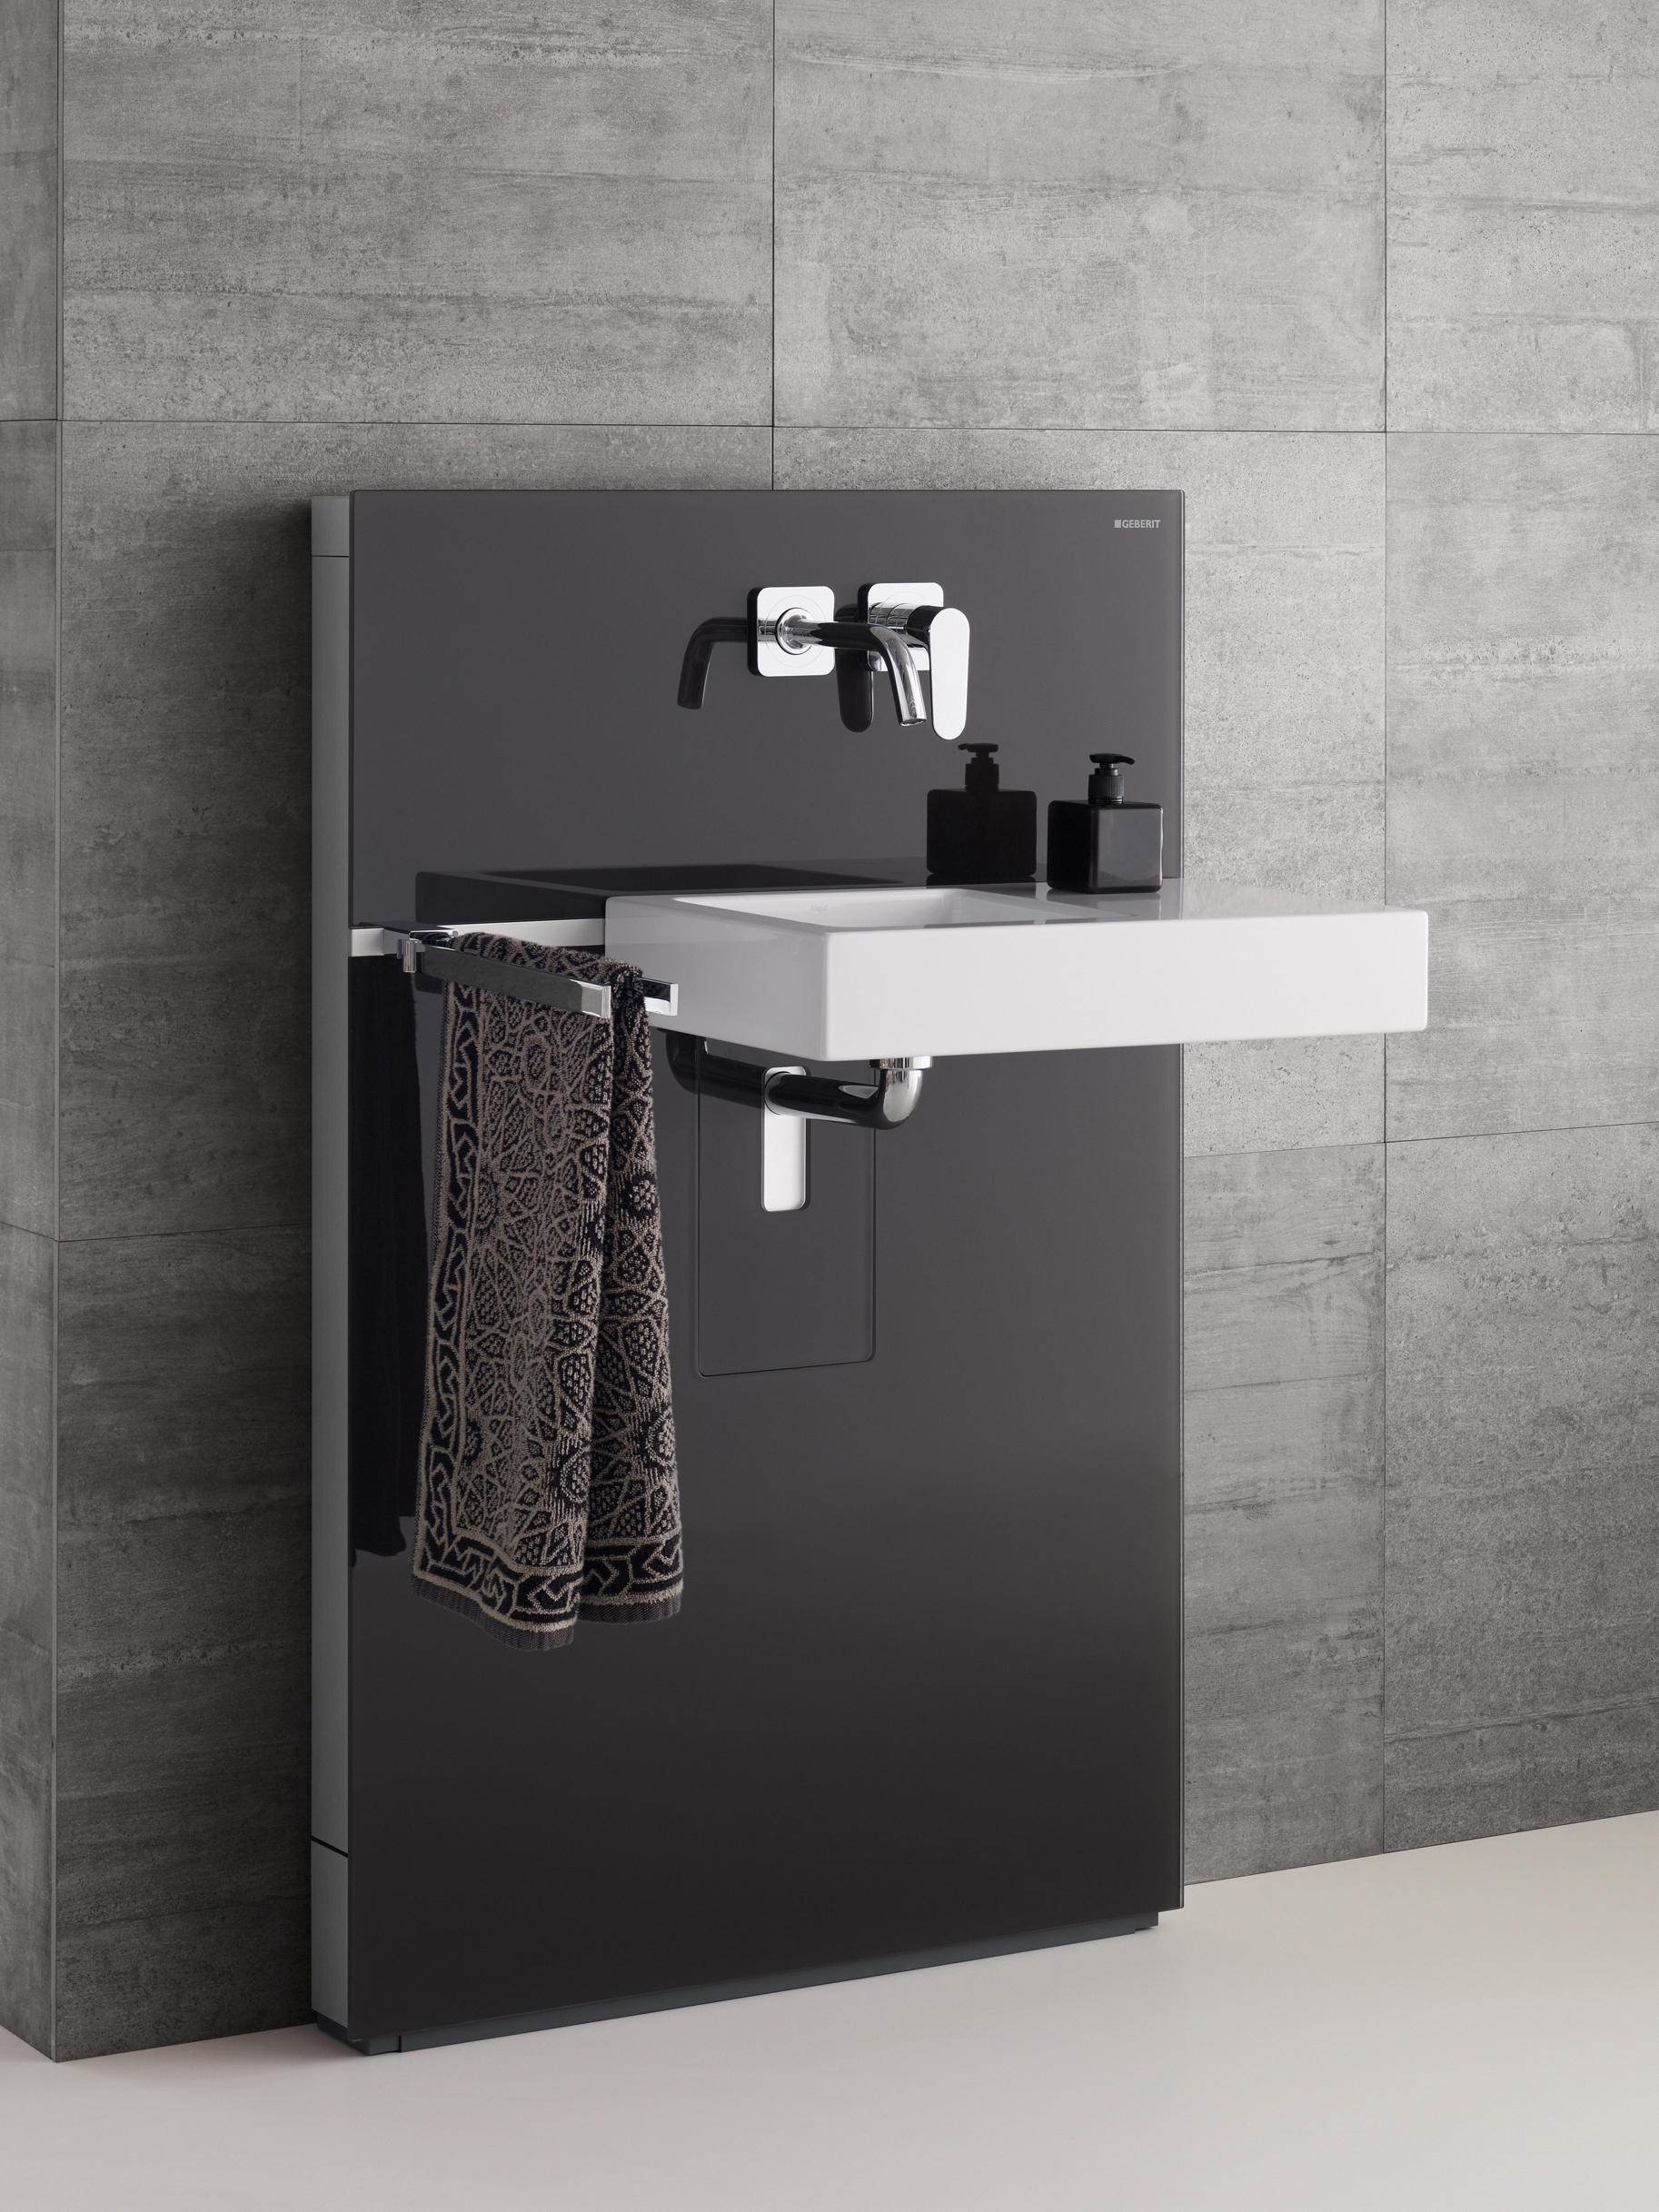 Geberit monolith plus flushes from geberit architonic for Geberit products